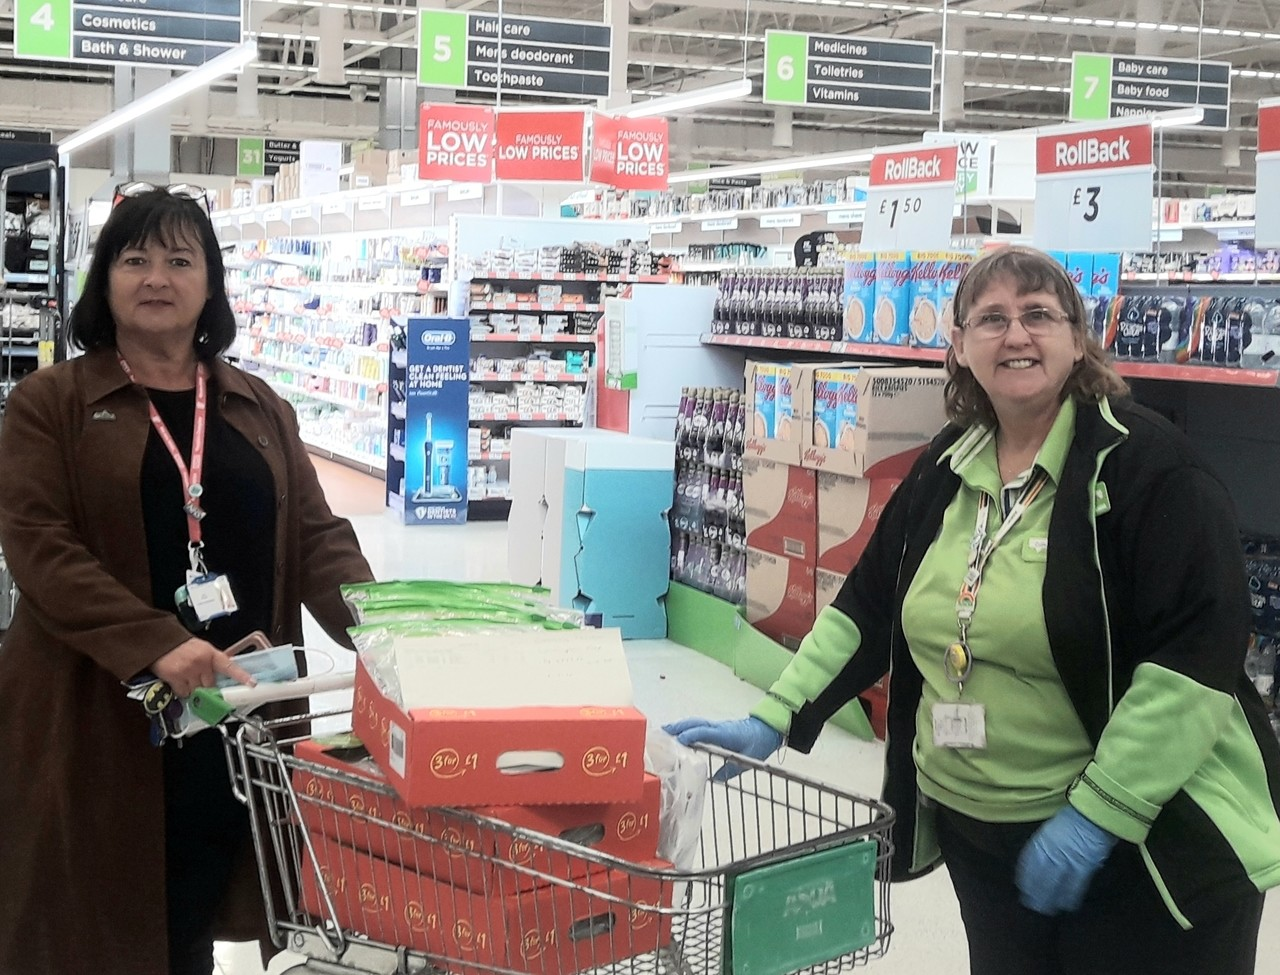 Activity packs for local hospital | Asda Westbrook